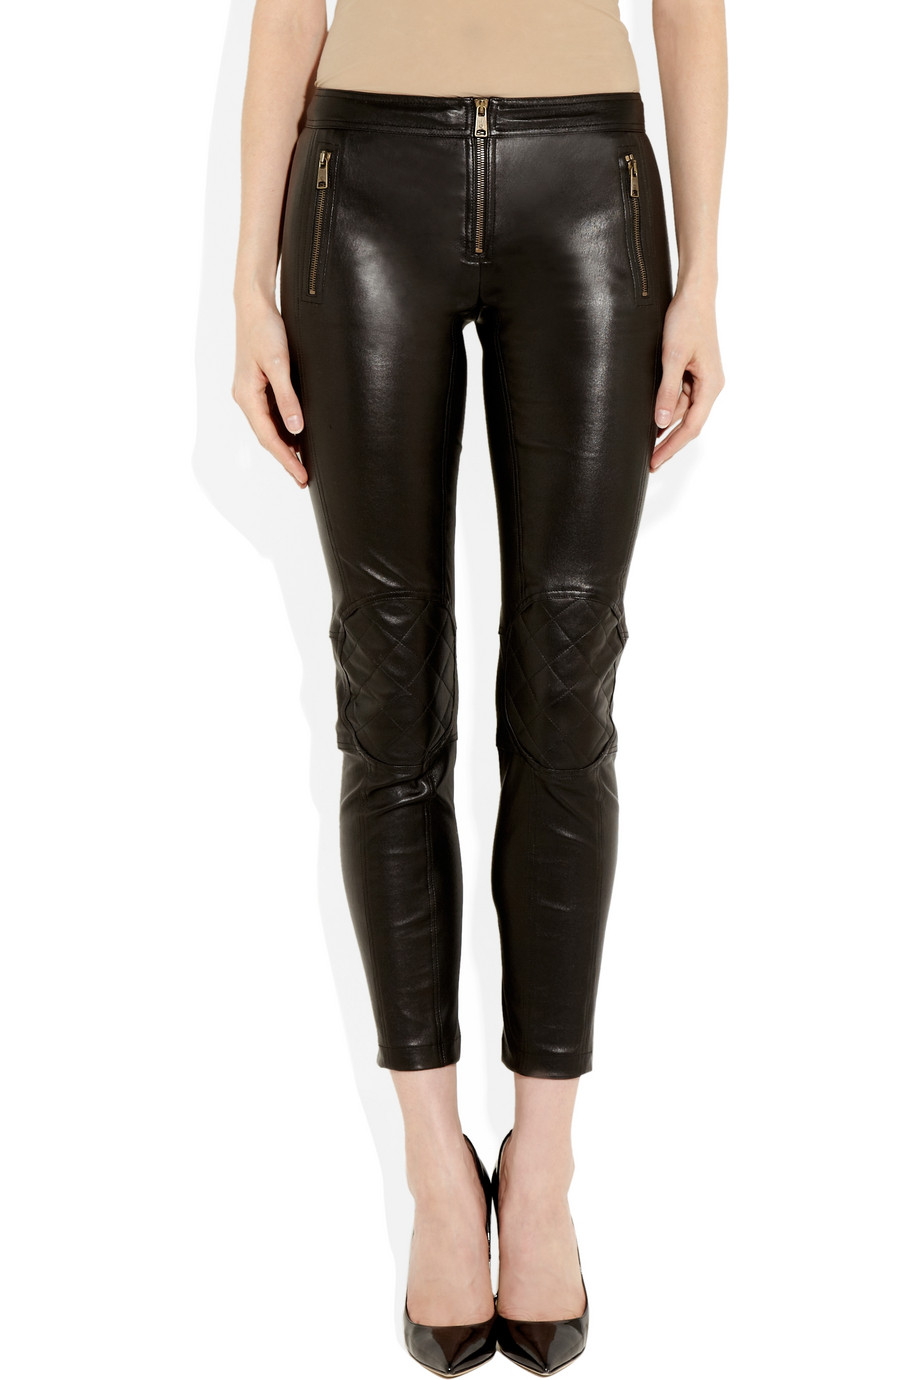 FAIRCHILD $99 Womens Black Faux Leather Skinny Casual Pants L B+B. Sold by BOBBI + BRICKA. $ $ ALFANI $79 Womens New Black Faux Leather Skinny Casual Pants 4 B+B. Sold by BOBBI + BRICKA. $ - $ TheMogan Faux Leather Leggings Skinny Pull On Pants.